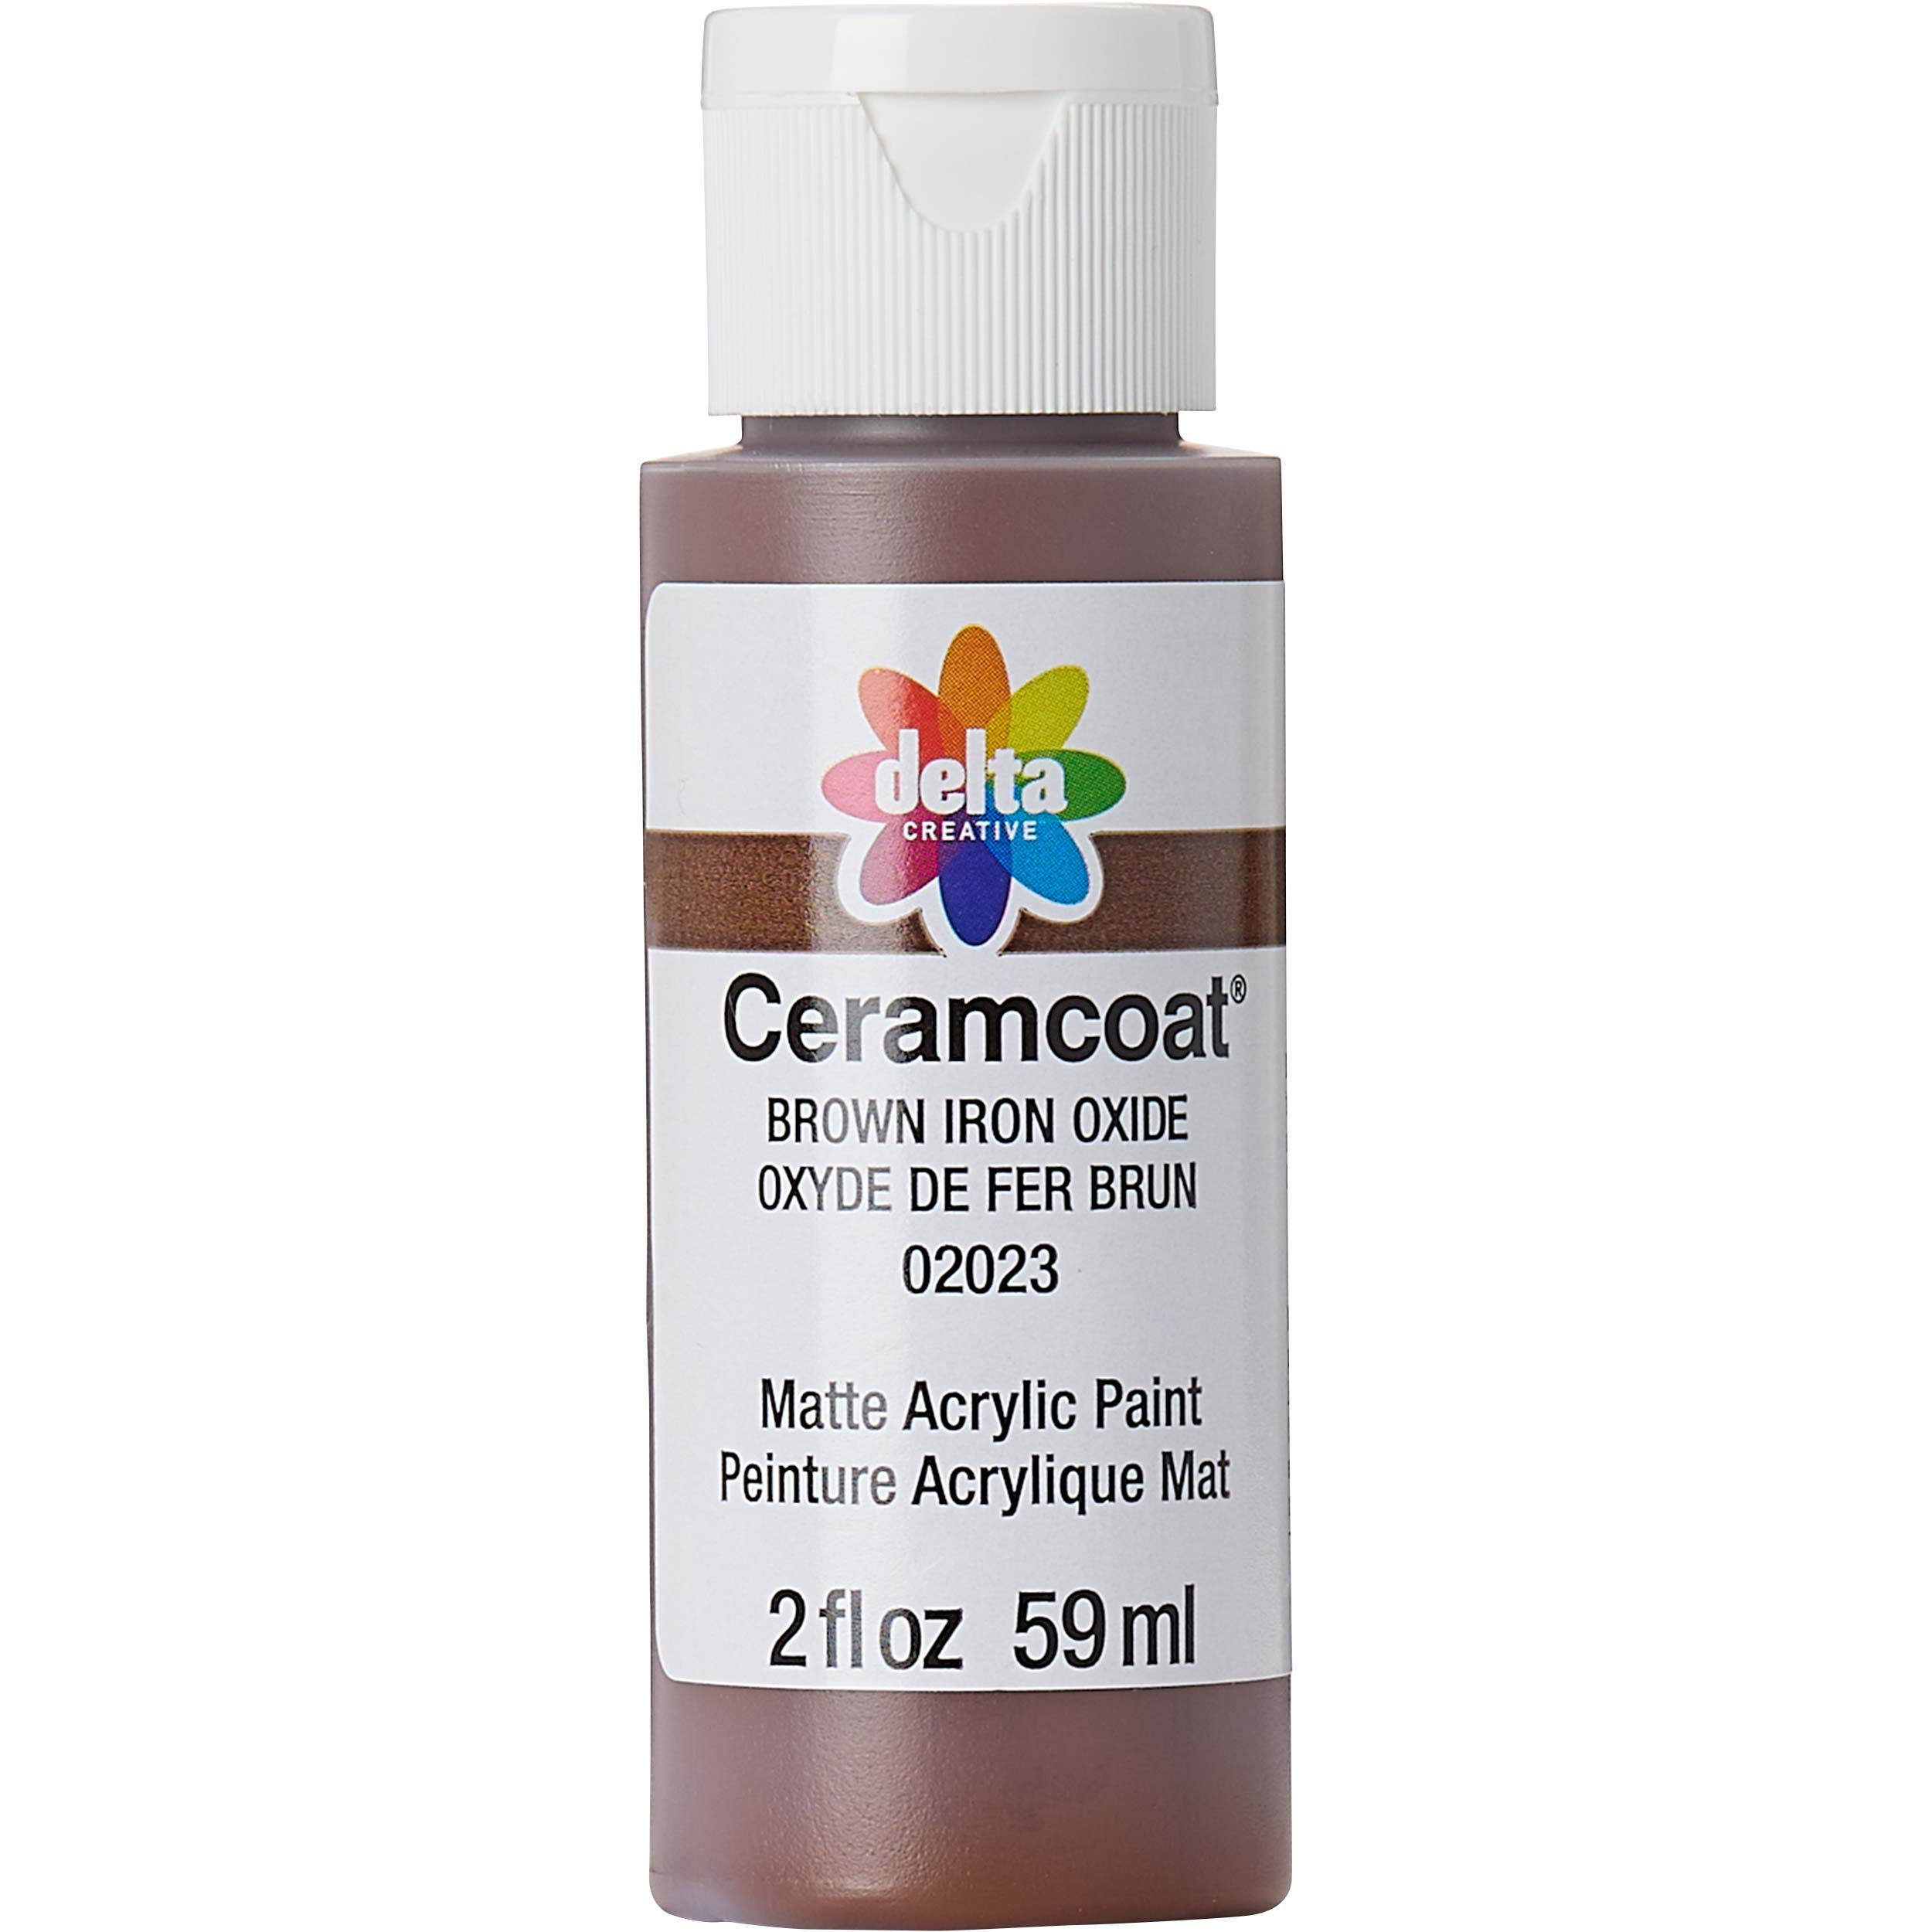 Delta Ceramcoat ® Acrylic Paint - Brown Iron Oxide, 2 oz.